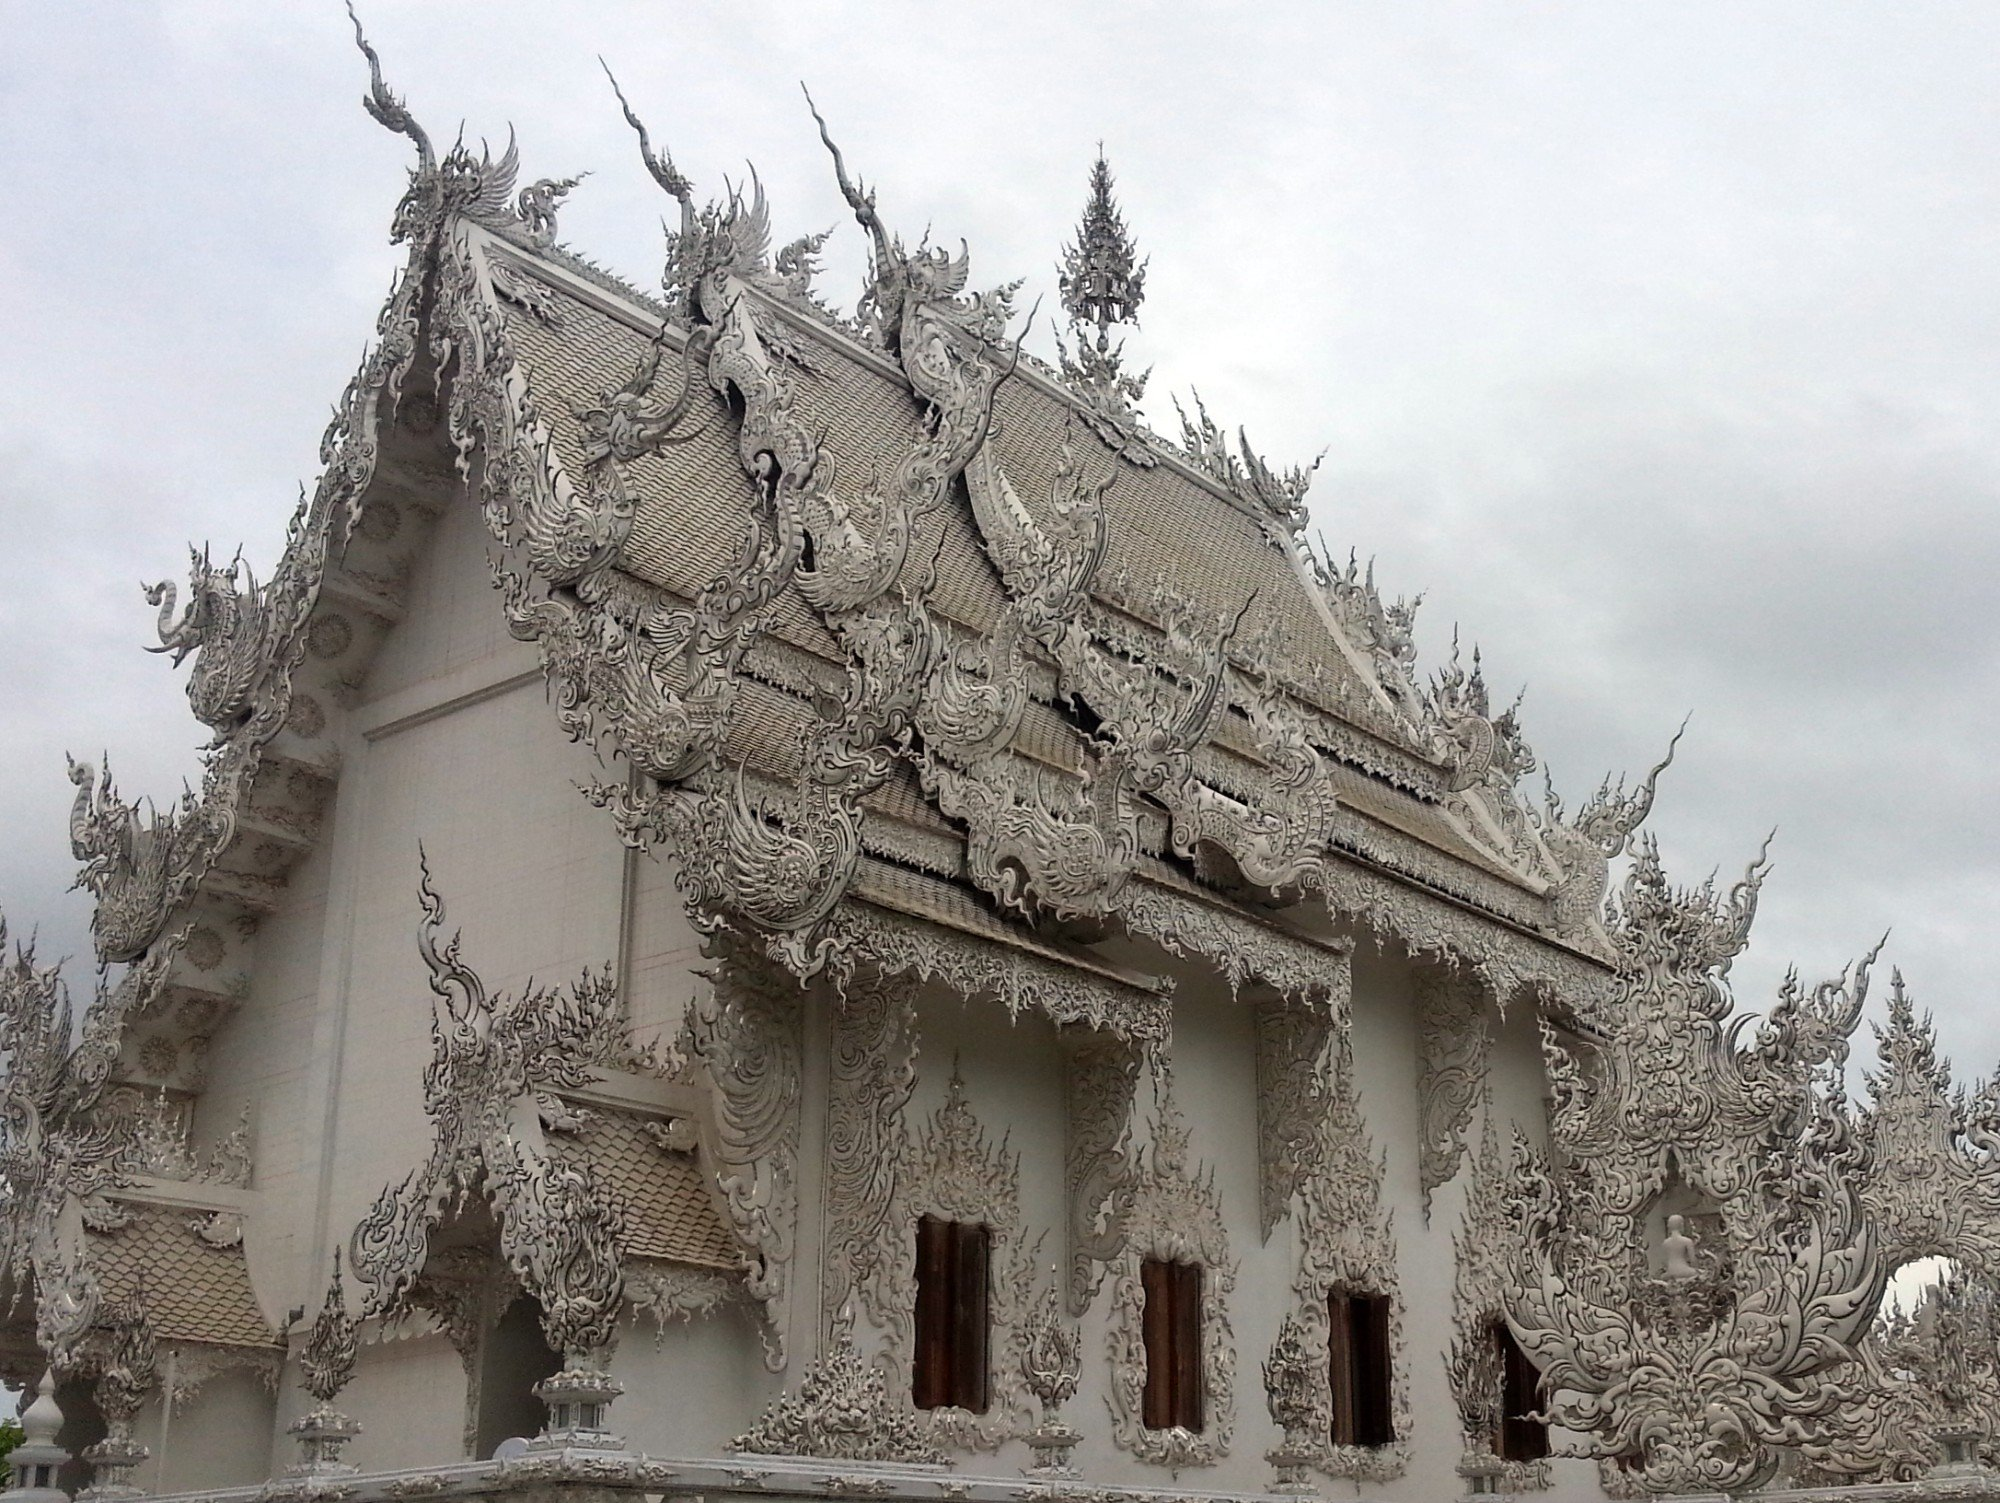 Ordination hall at the White Temple